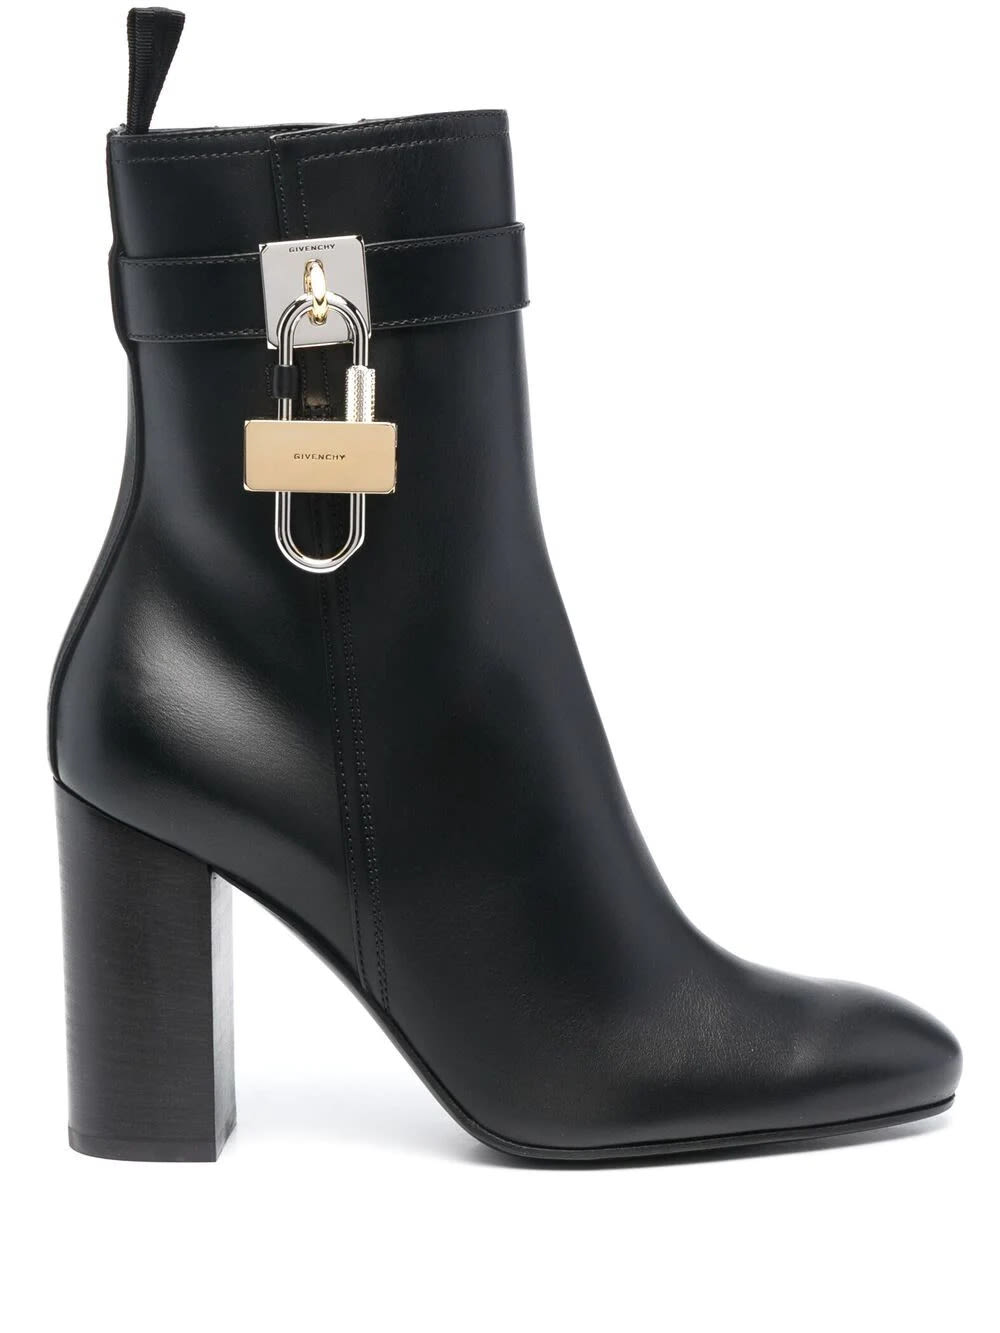 Givenchy Black Leather Ankle Boot With Padlock